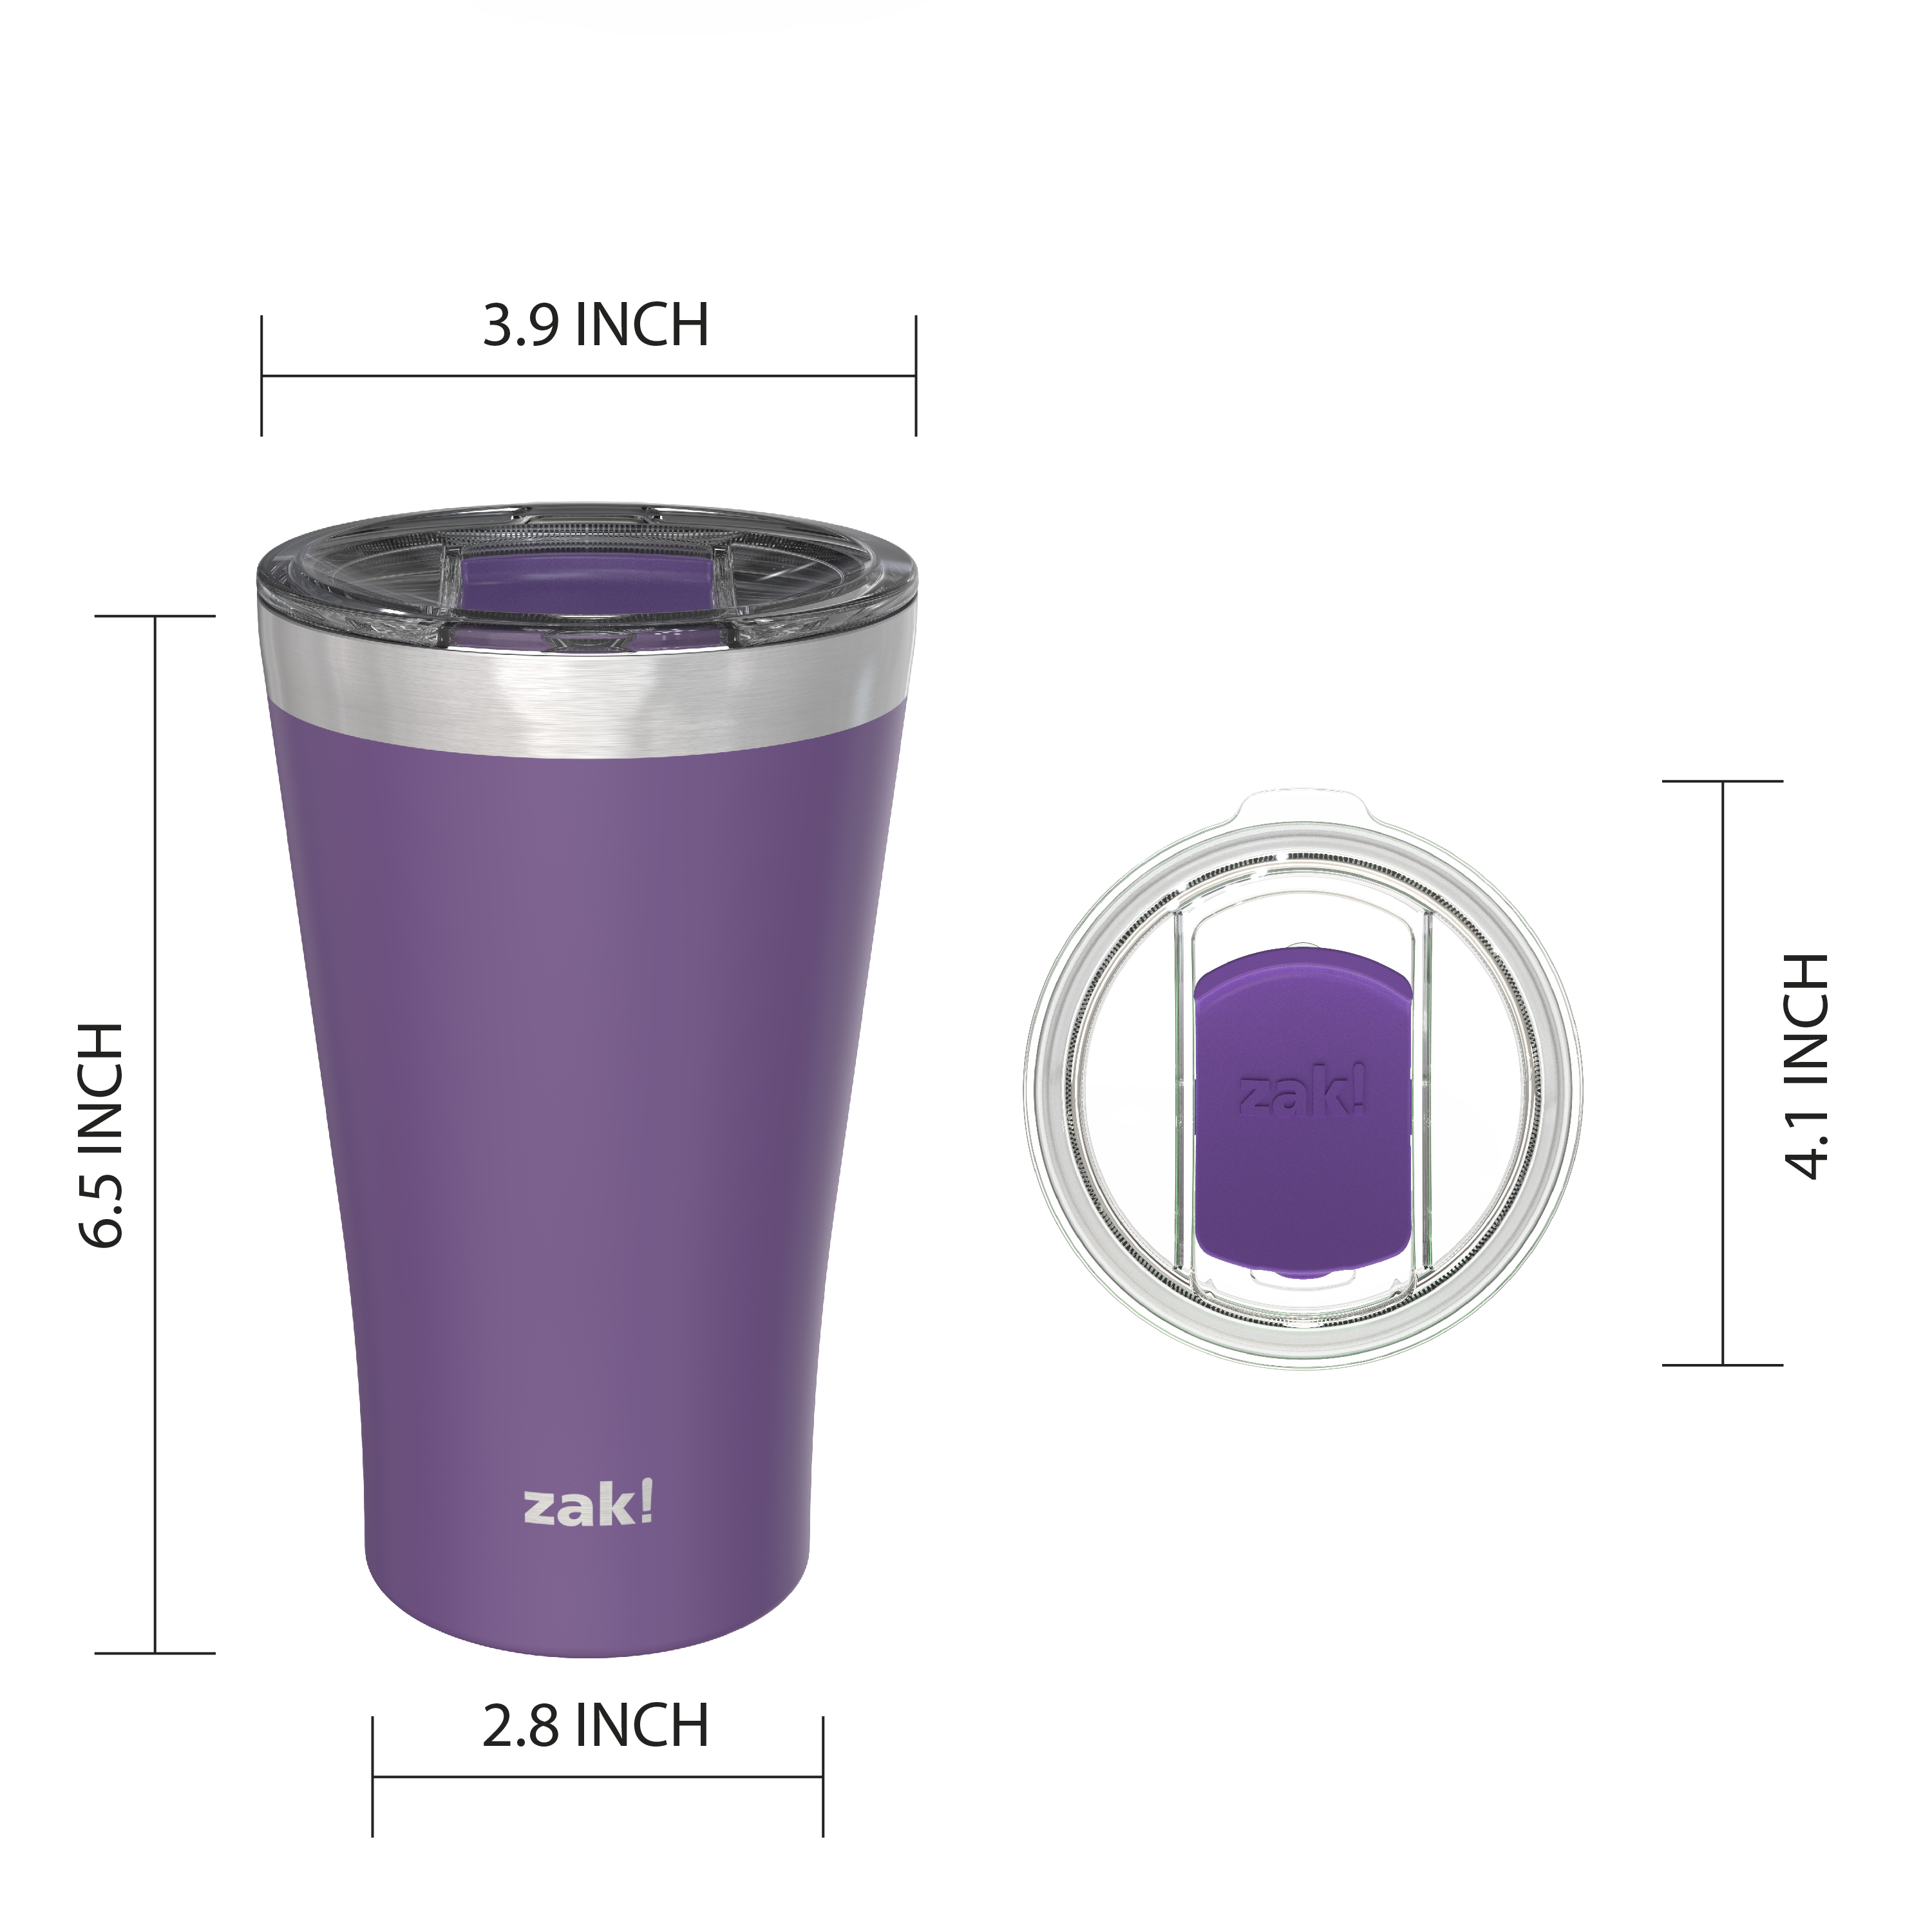 Zak Hydration 20 ounce Reusable Vacuum Insulated Stainless Steel Tumbler with Straw, Viola slideshow image 2